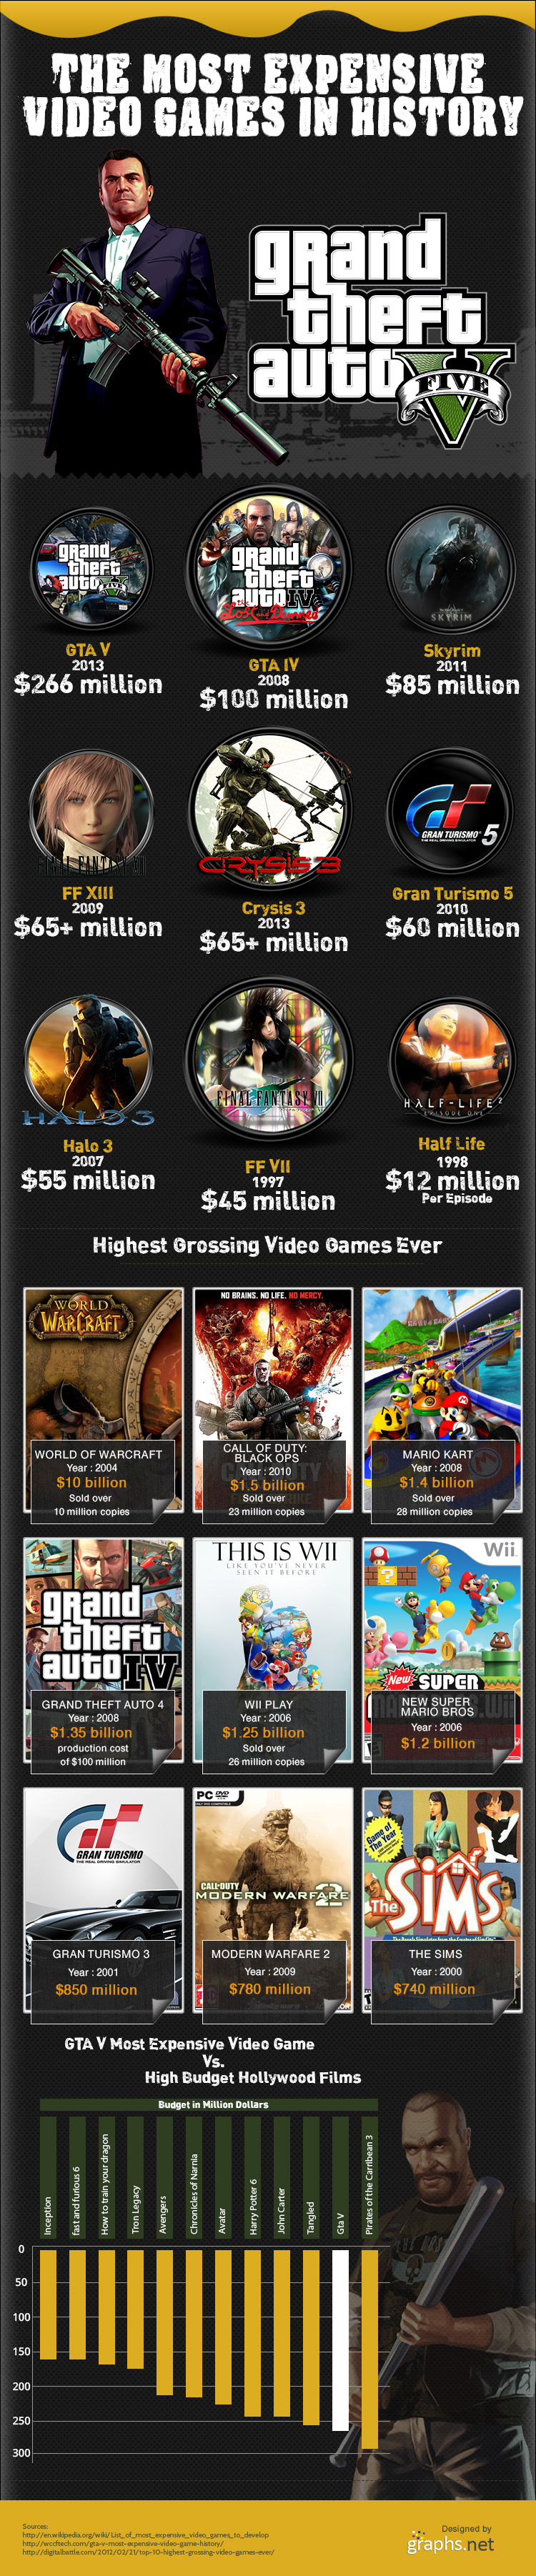 Infographic - Most Expensive Video Games